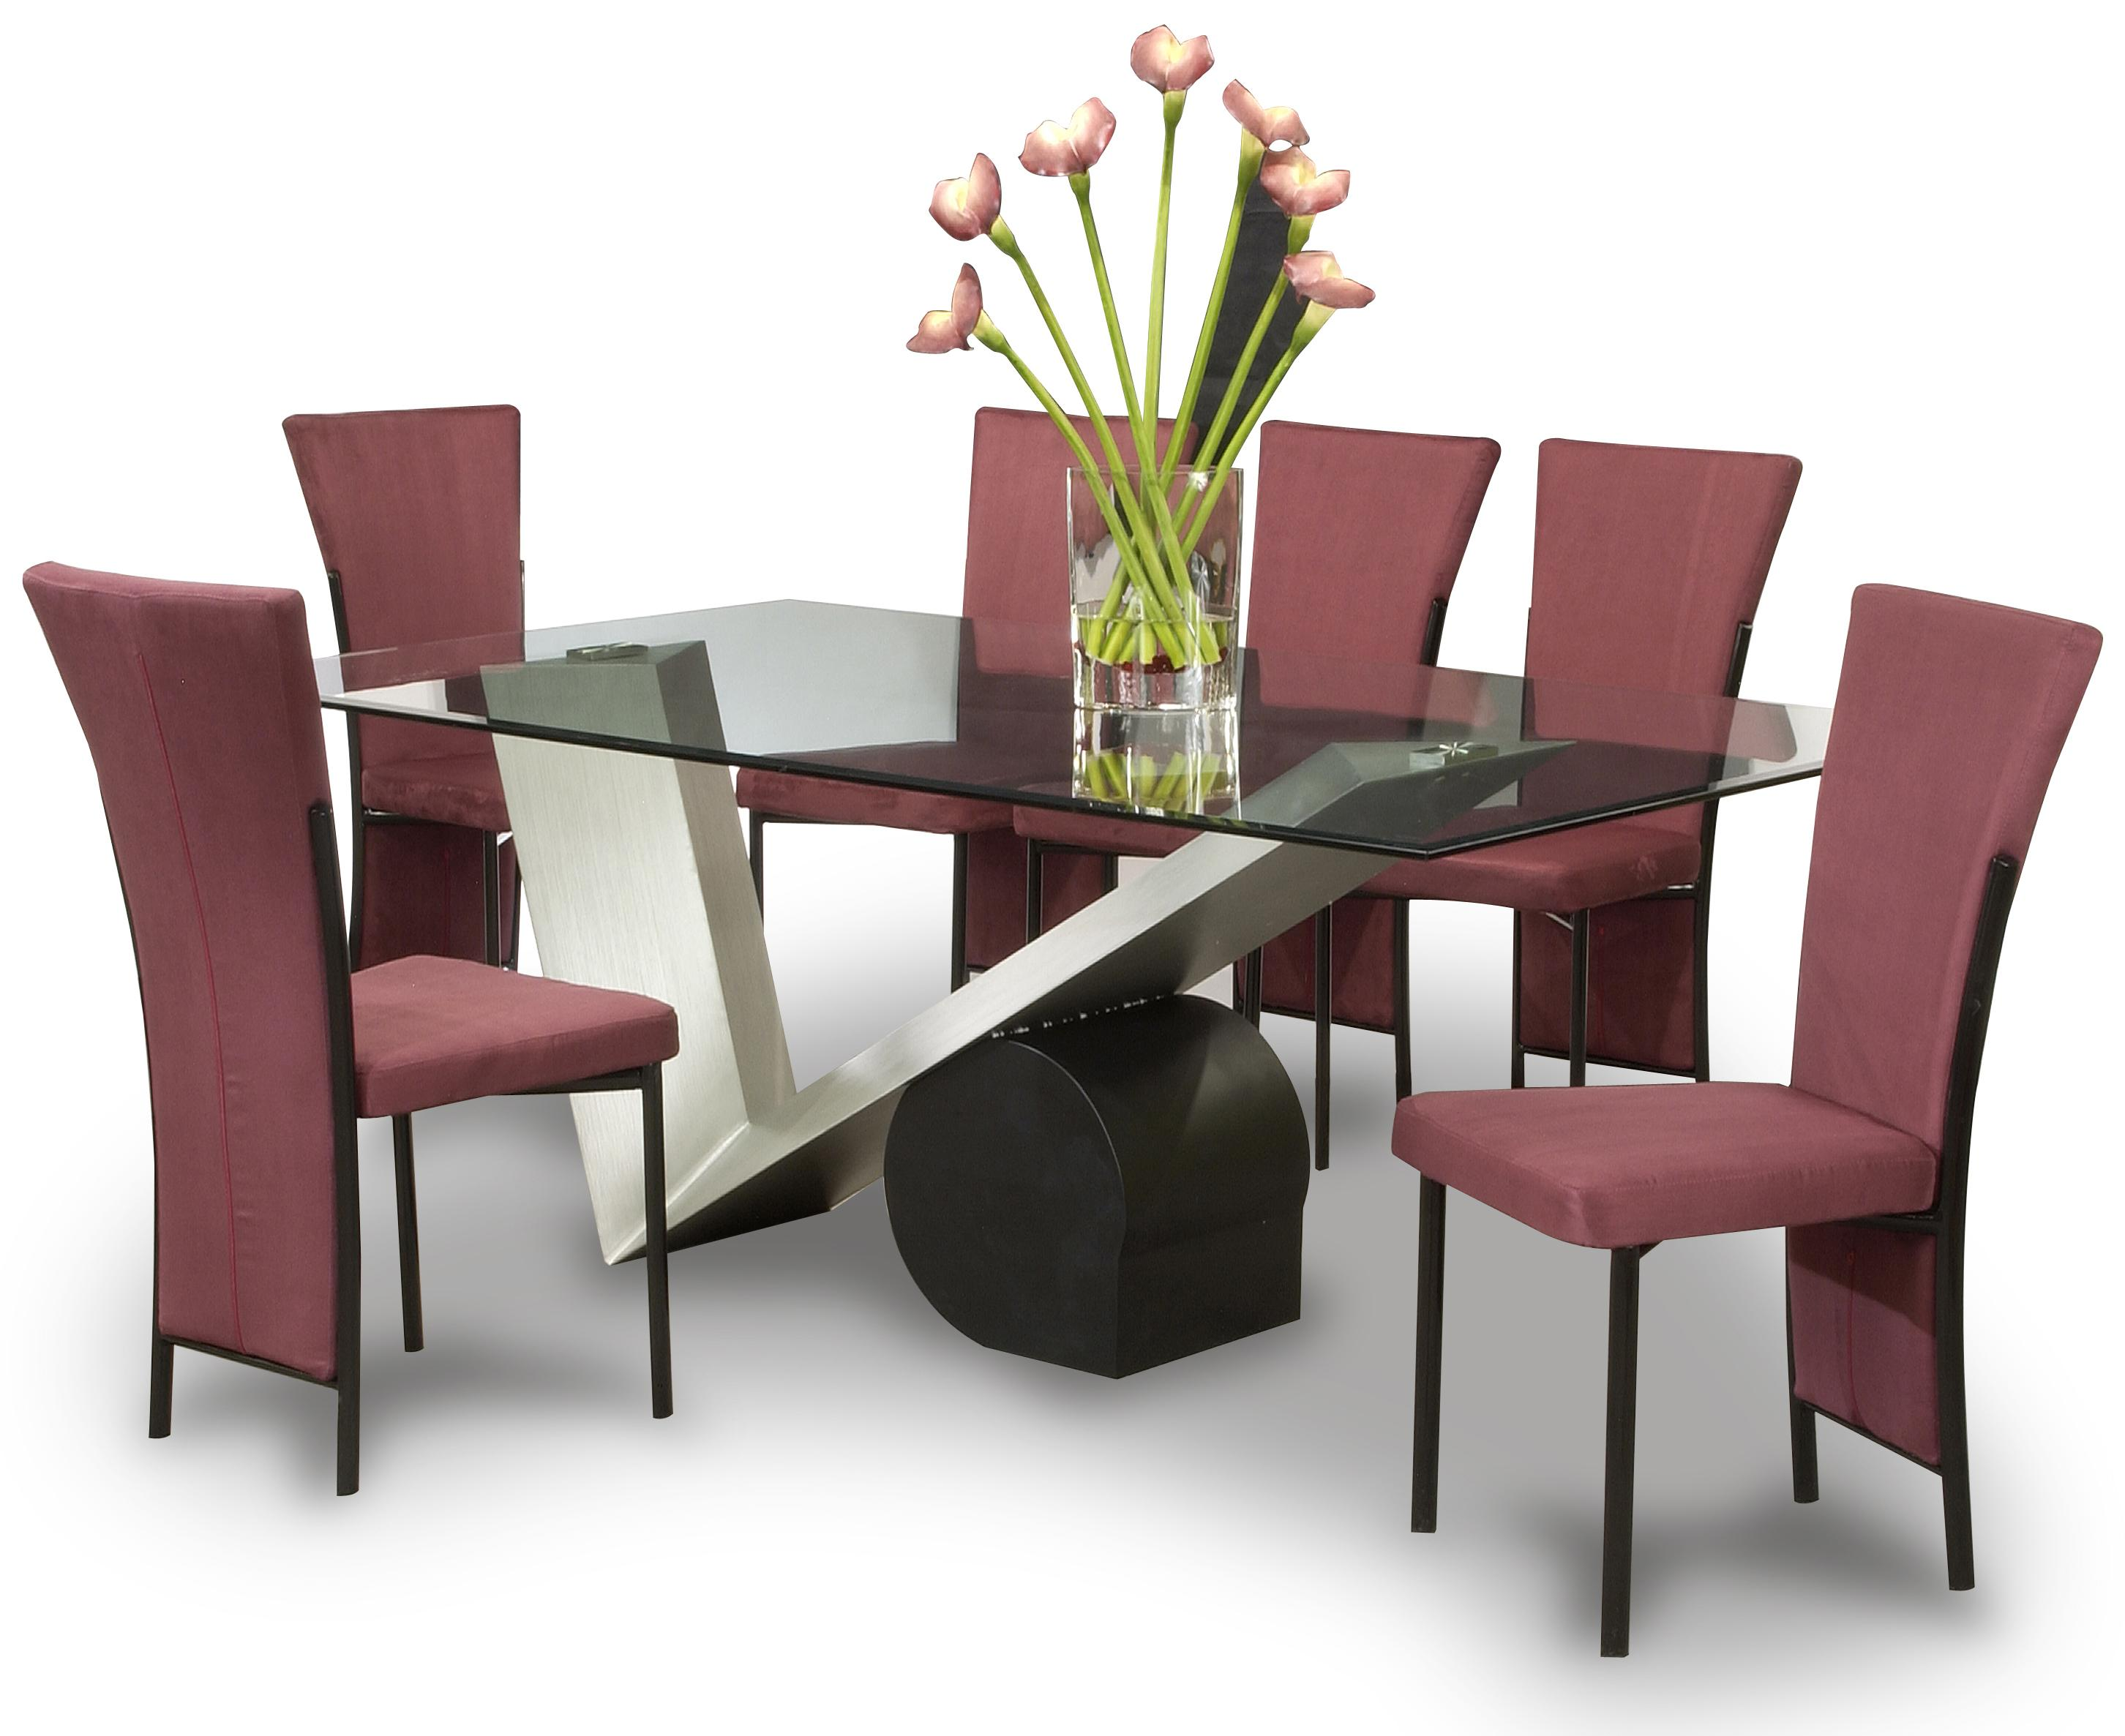 Chintaly Imports Jennifer Jennifer Dt B T 6xsc Brg Dining Table W 6 Side Chairs Corner Furniture Dining 7 Or More Piece Set